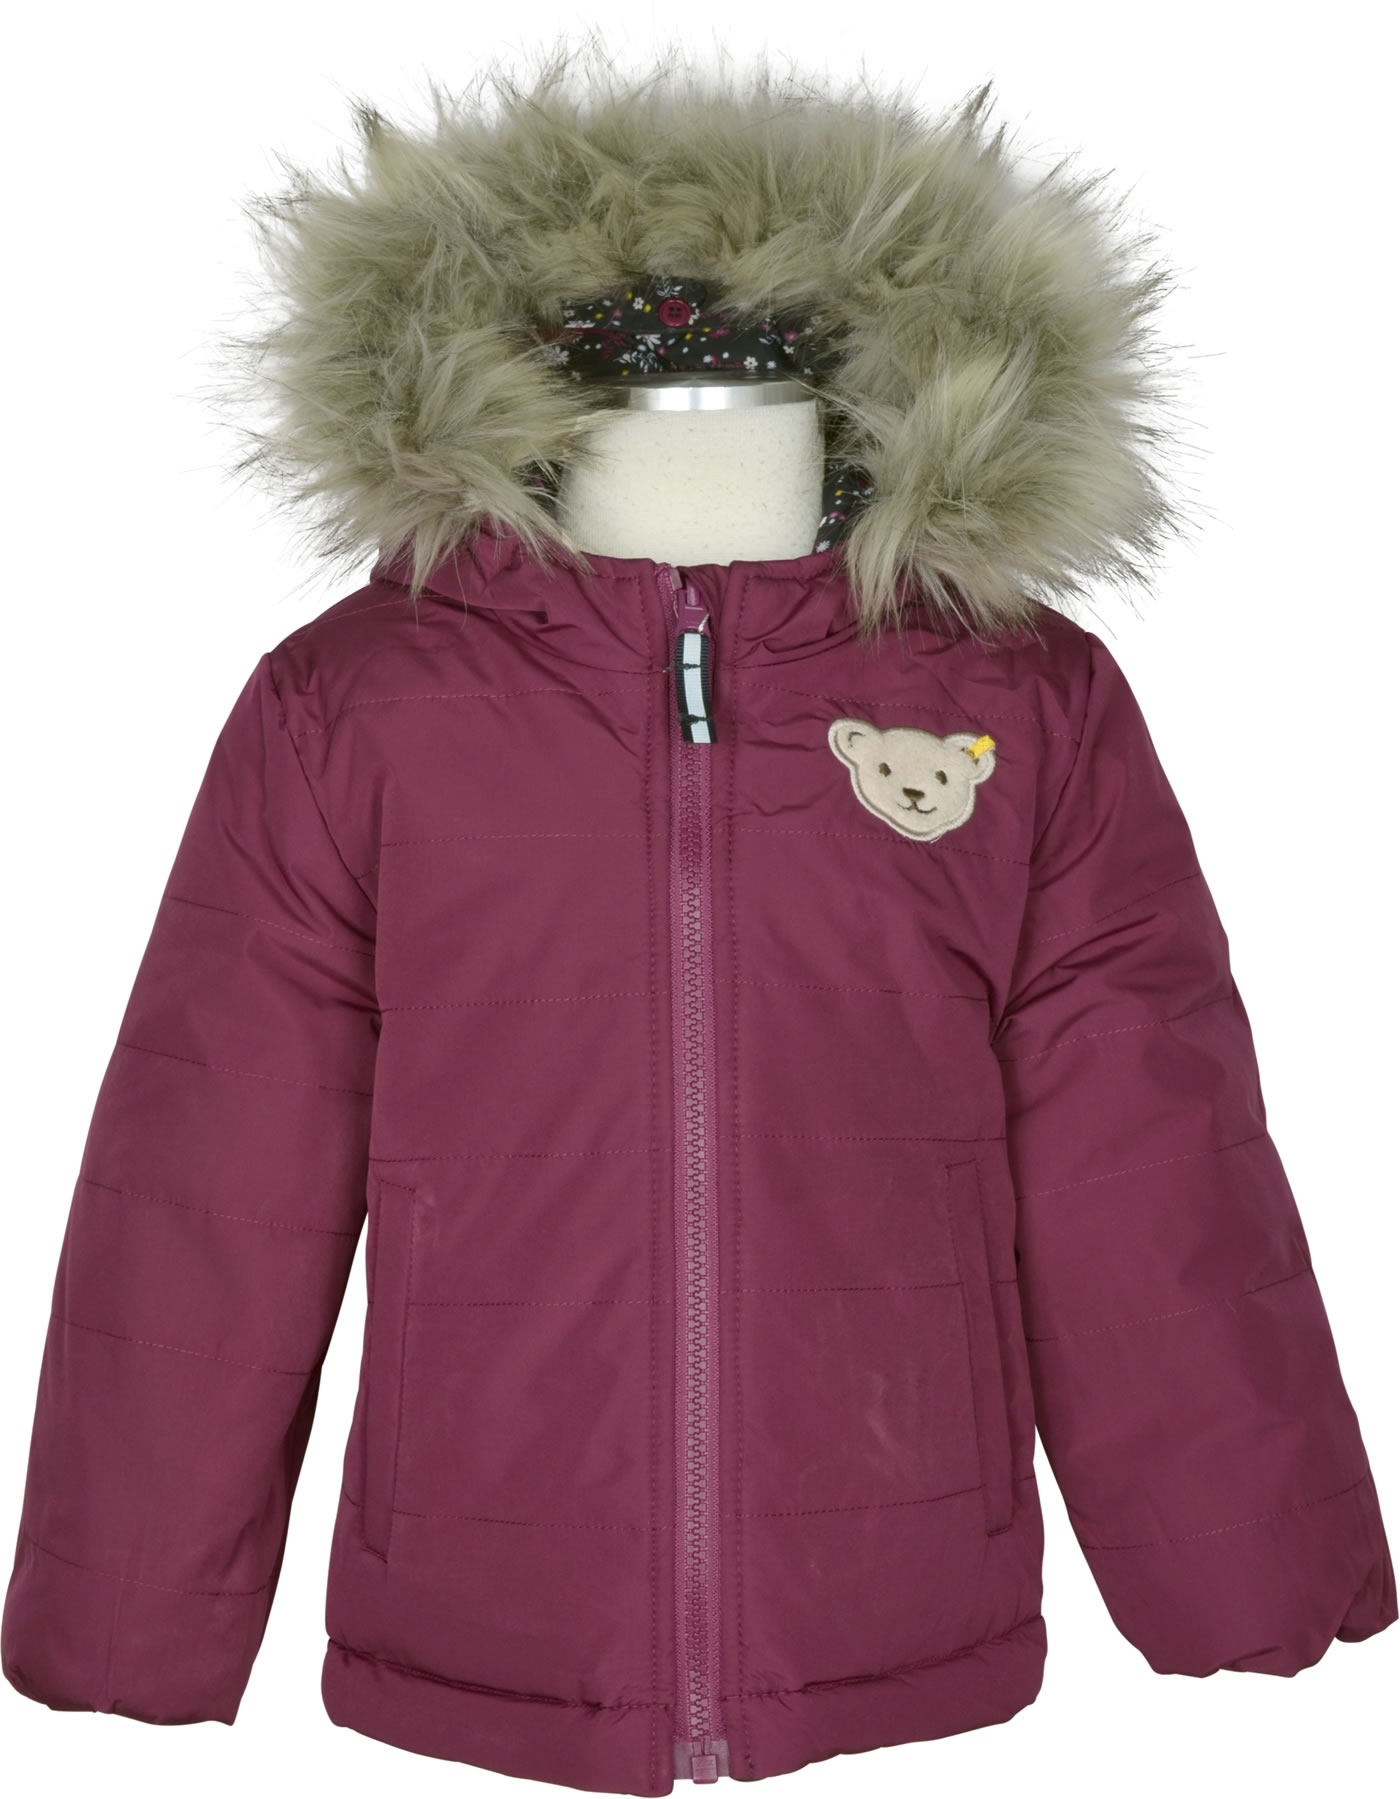 Steiff Wende Jacke Bionic Finish BLUEBERRY HILL beet red 1922601 4010